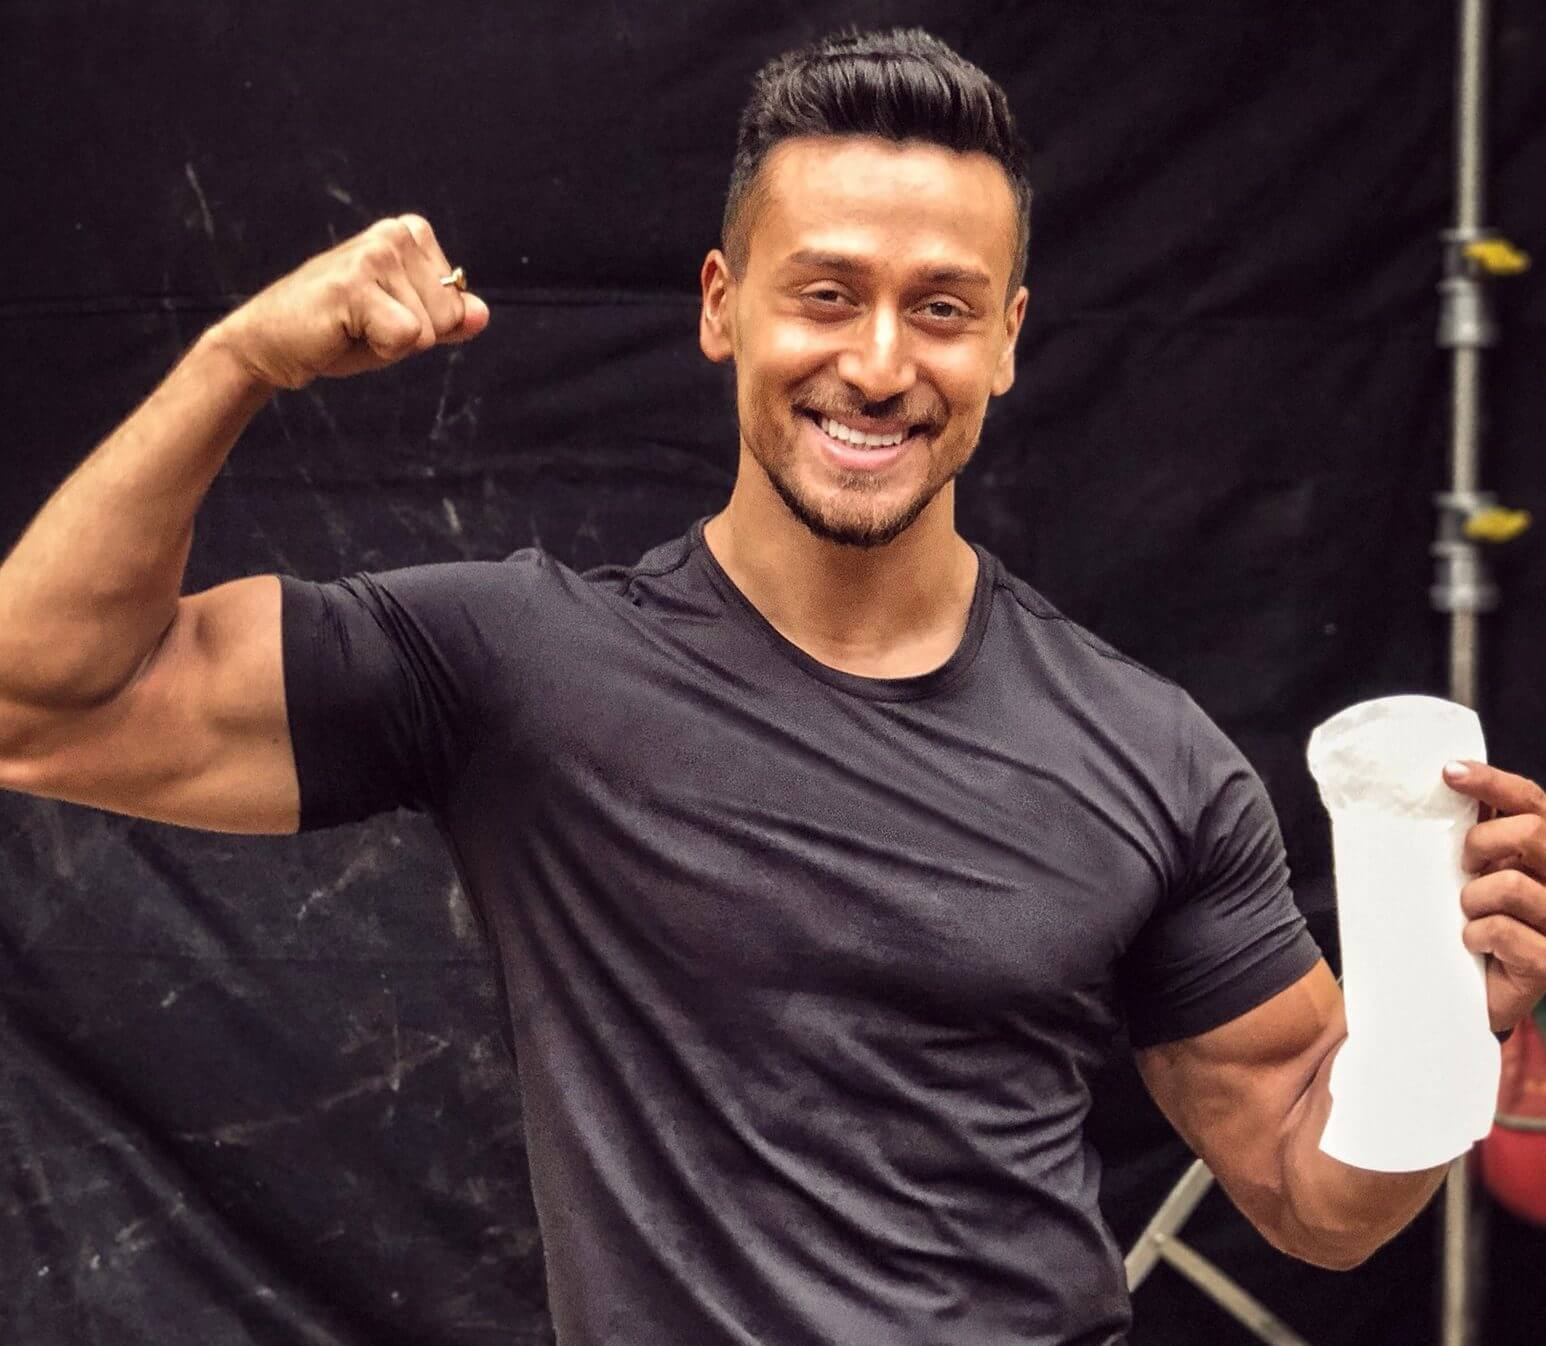 Tiger Shroff Age, Photos(image), Song, Movie, Height, Girlfriend, Sister, Date Of Birth, Net Worth, Biography, Education, Awards, Instagram, Twitter, Facebook, Wiki, Imdb, Youtube (54)